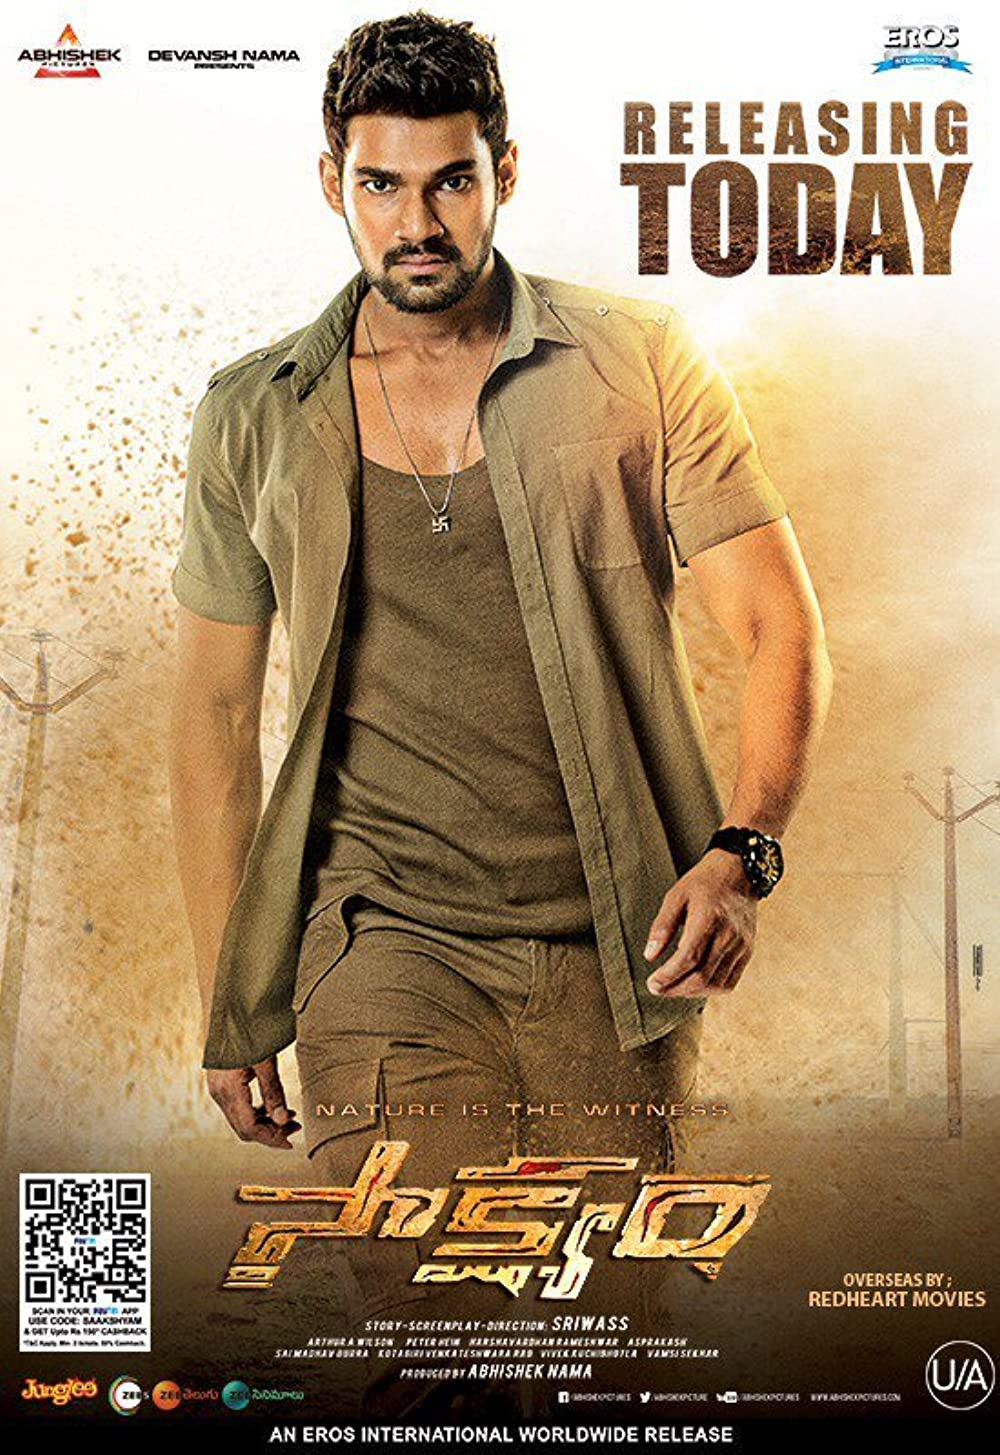 Pralay The Destroyer (Saakshyam) 2021 ORG Hindi Dubbed 1080p HDRip 1.91GB Download